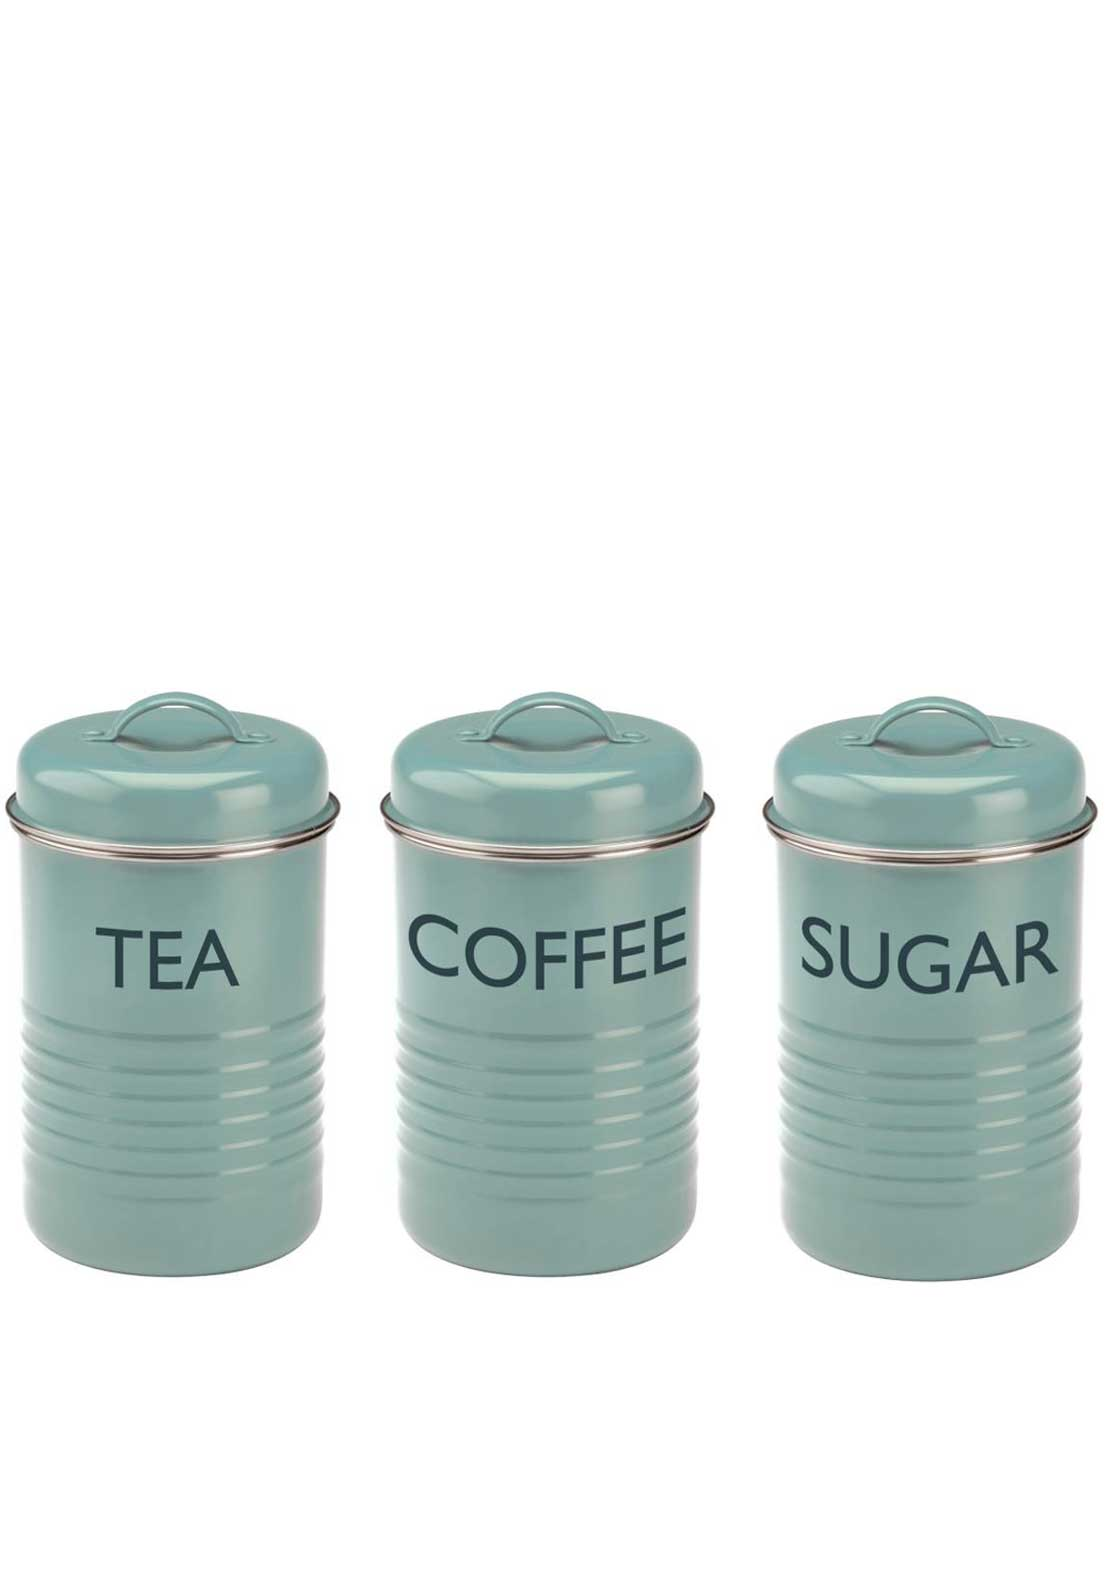 Typhoon Vintage Kitchen Set of 3 Storage Jars, Blue